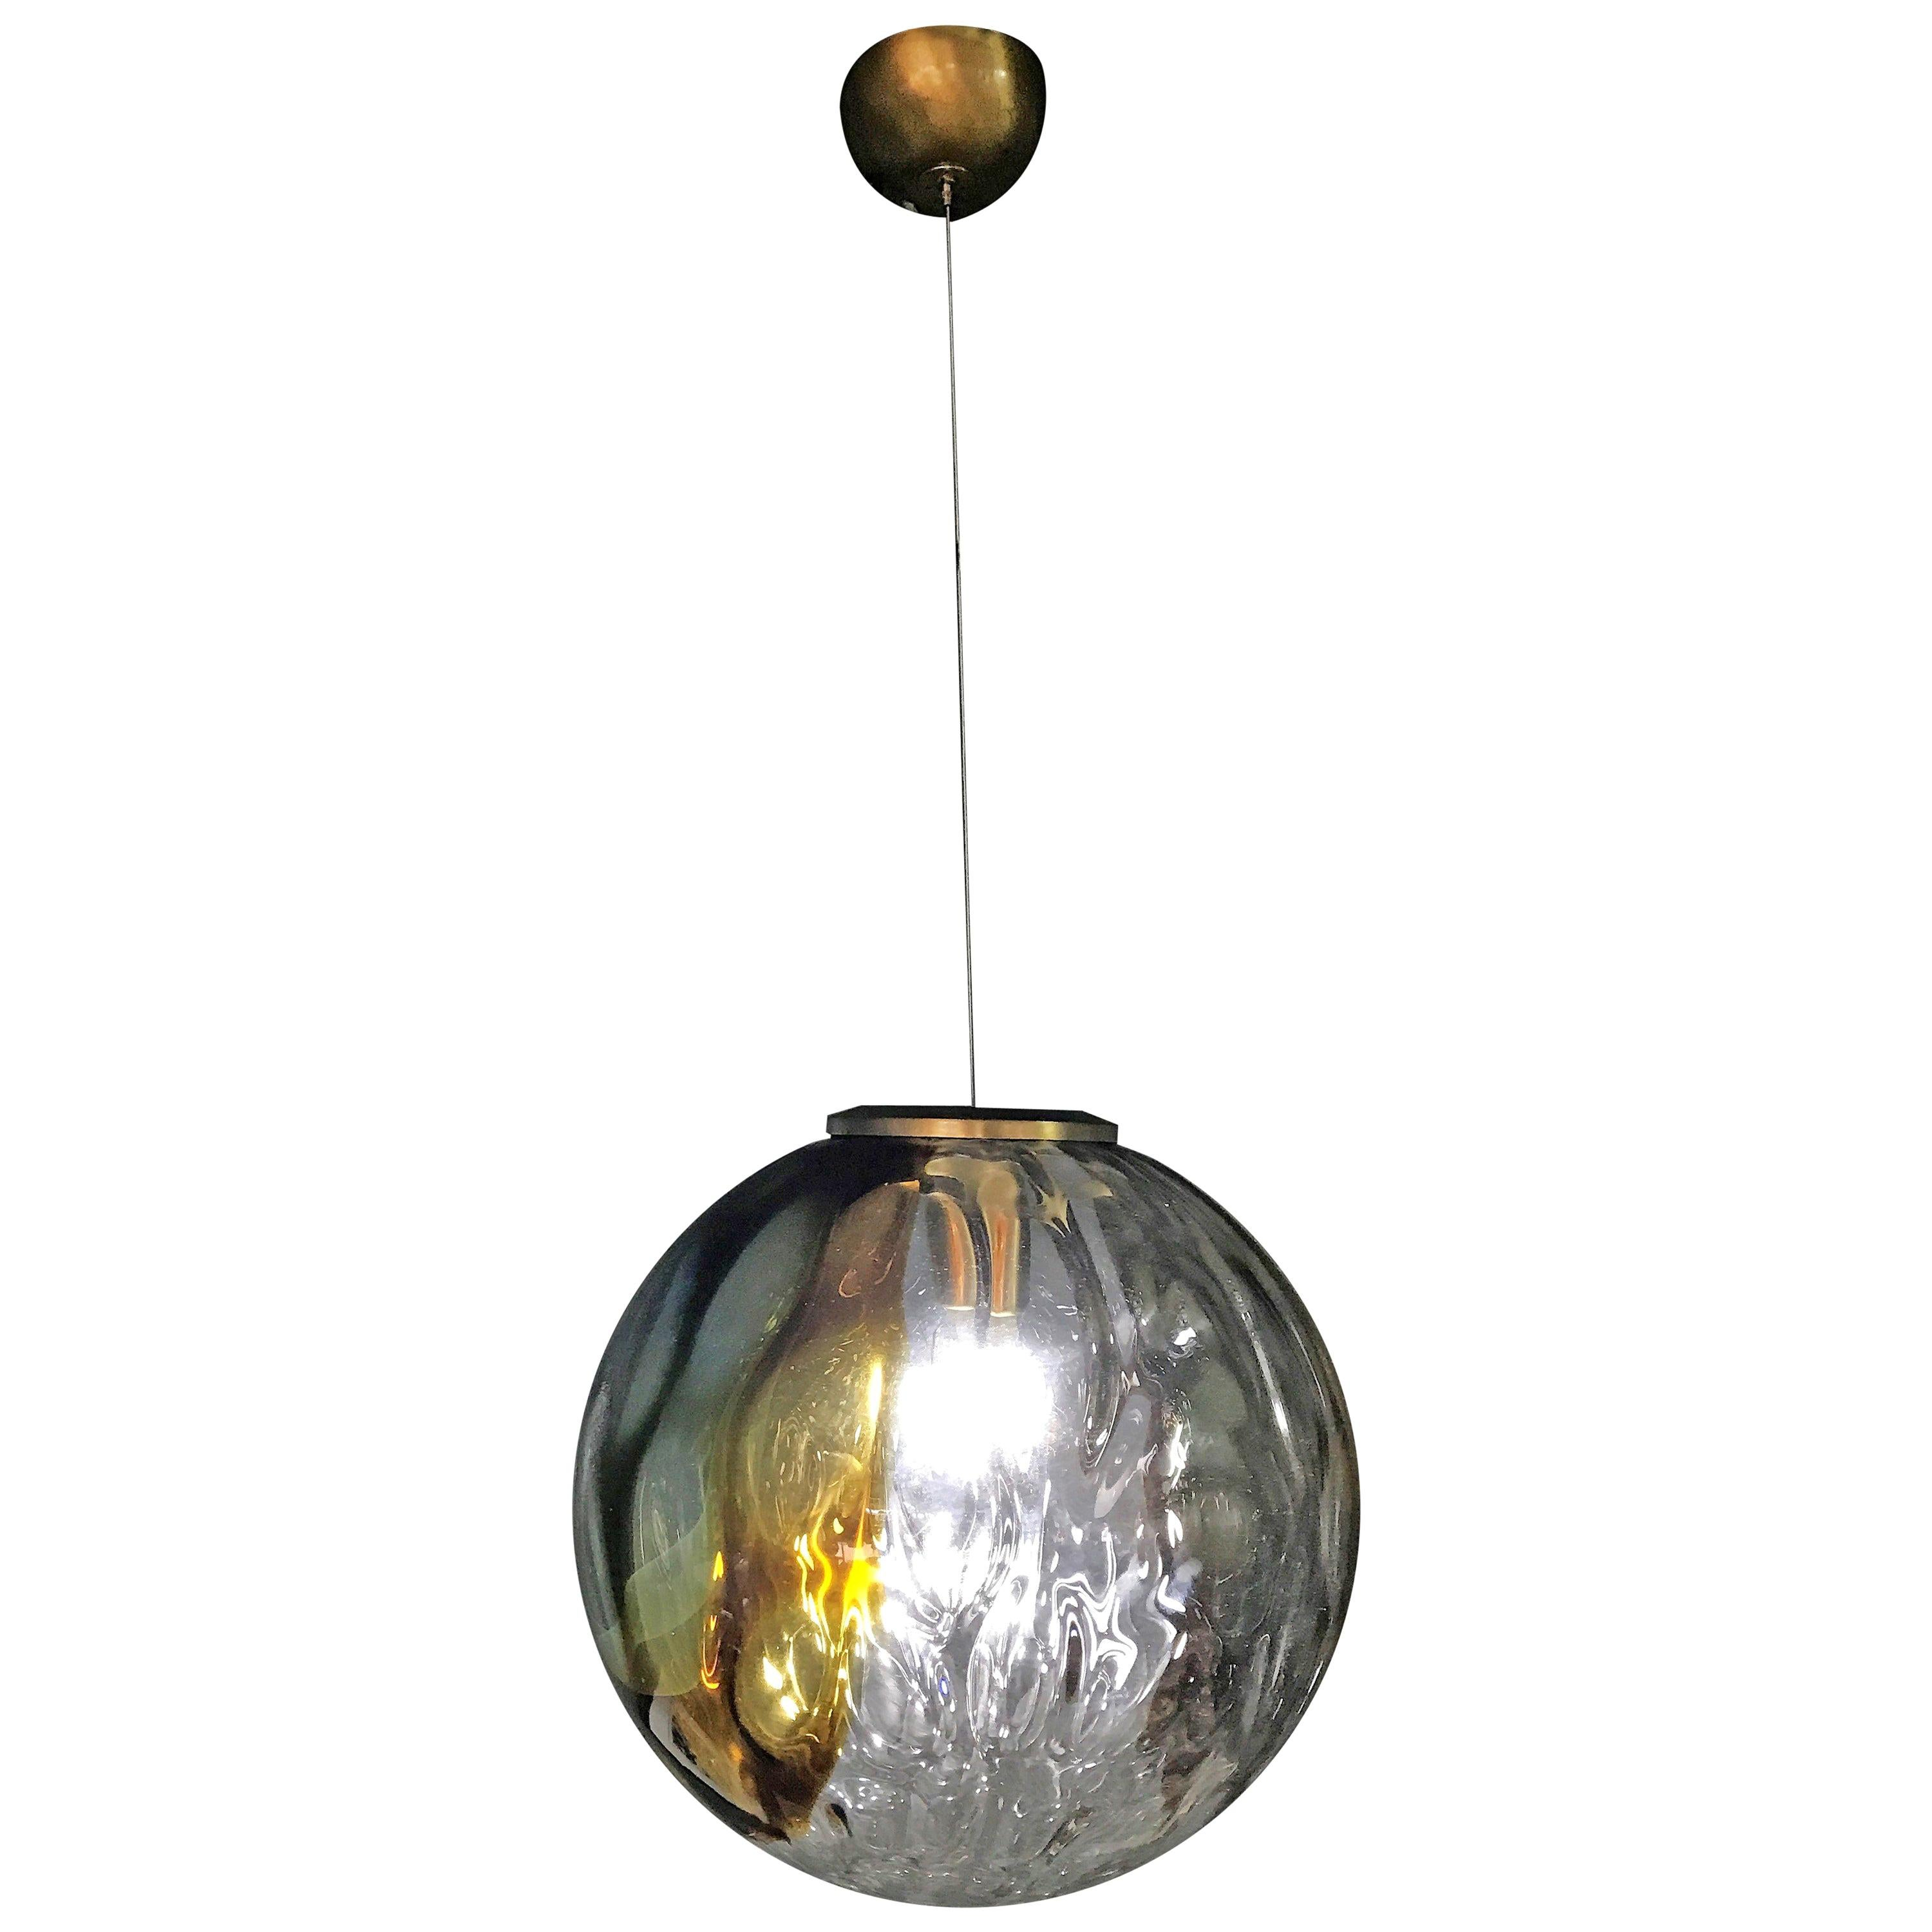 Two Mid-Century Modern Murano Glass Chandelier by Venini Art Glass VeArt, 1970s